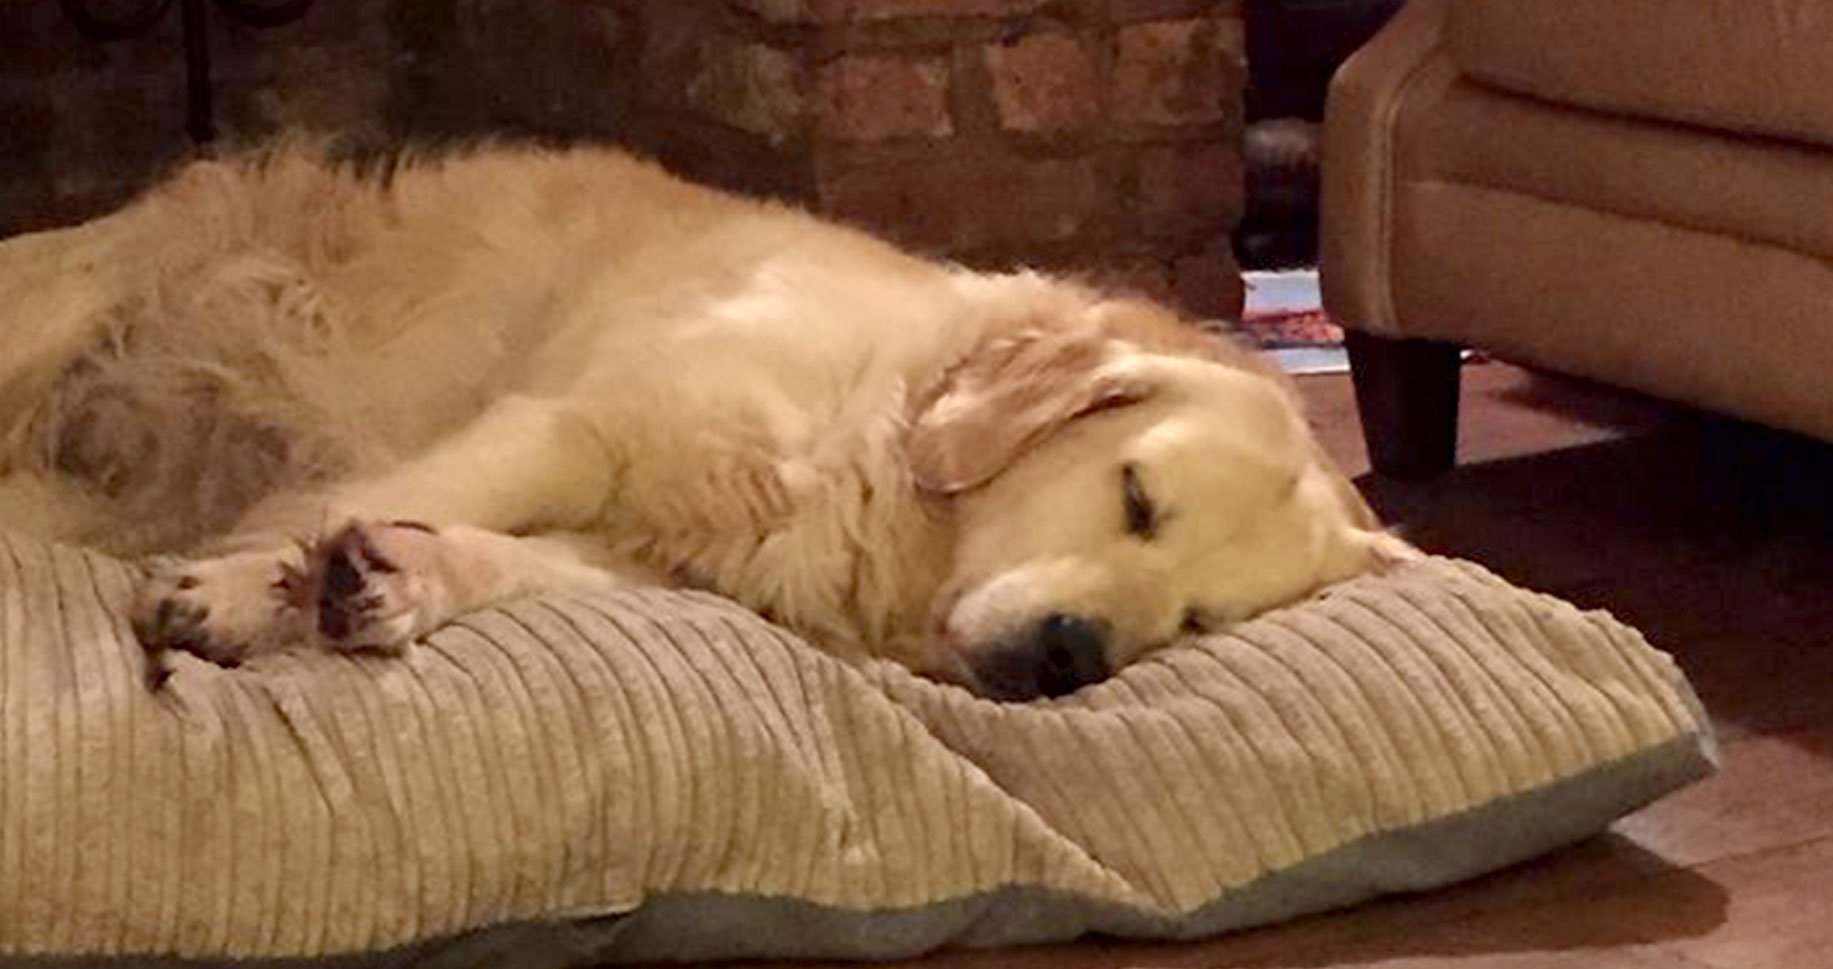 Image of a golden retriever sleeping on a dog bed